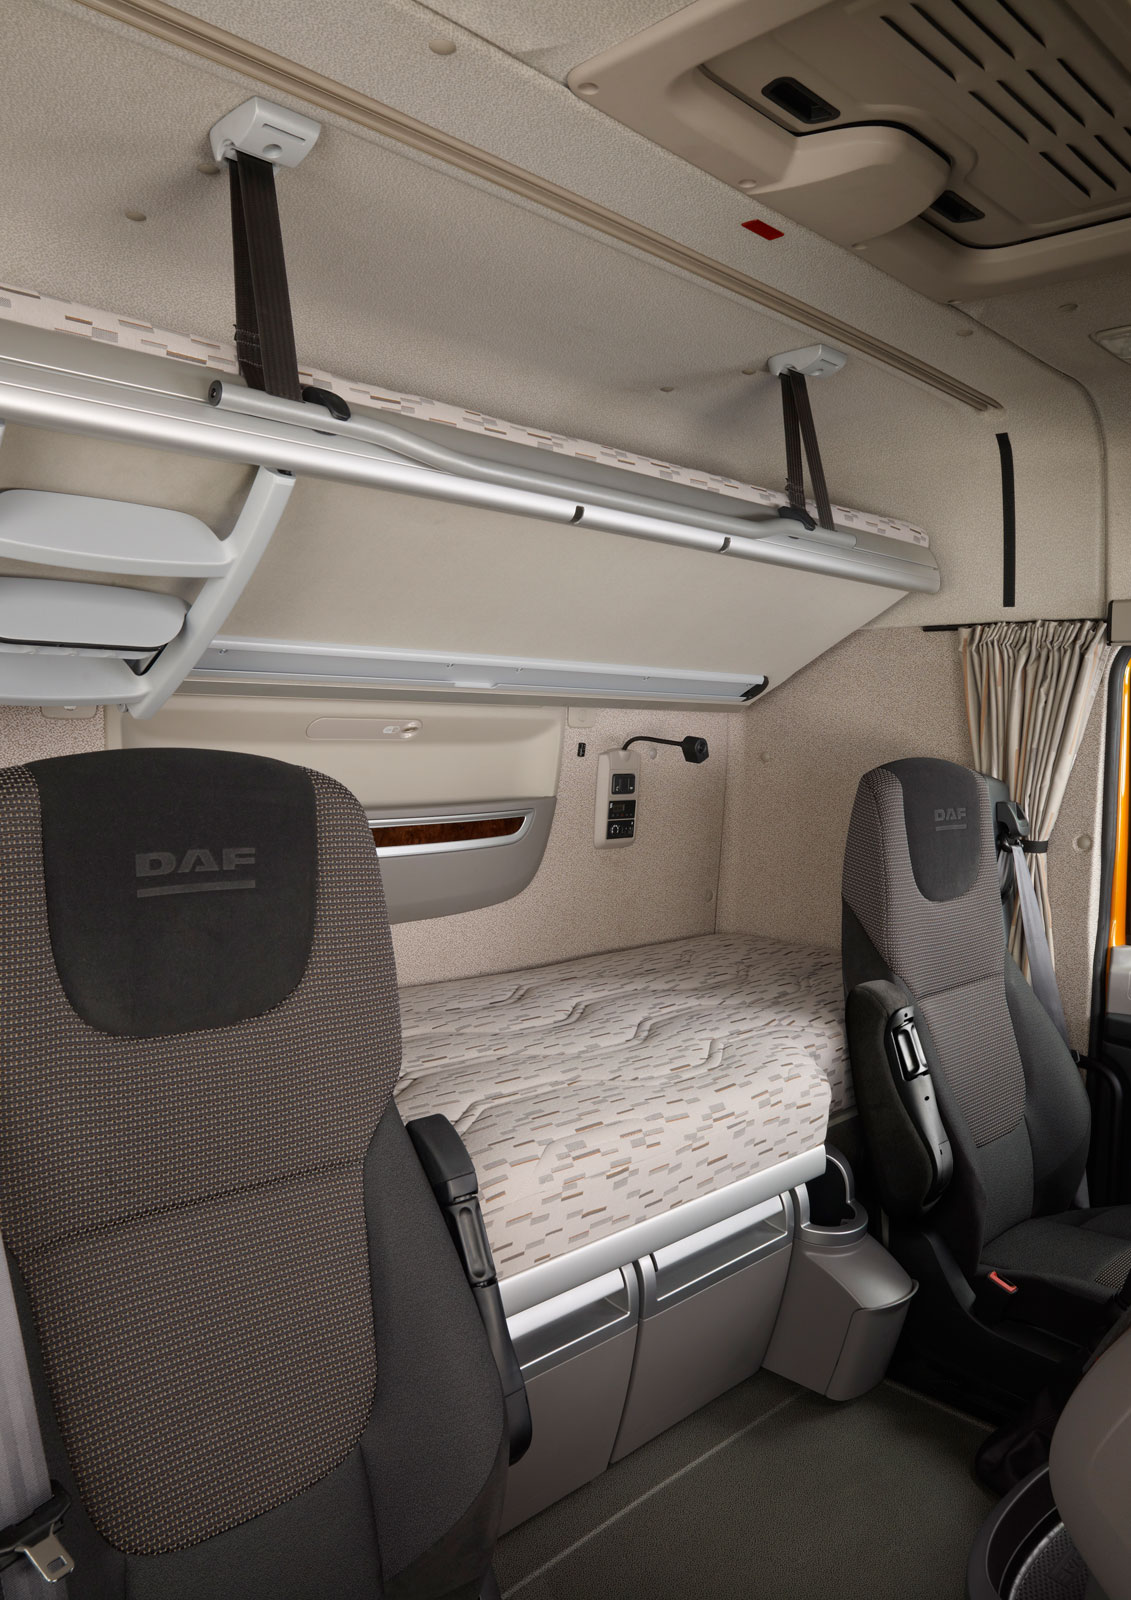 DAF XF Interior - view on bed - Car Body Design